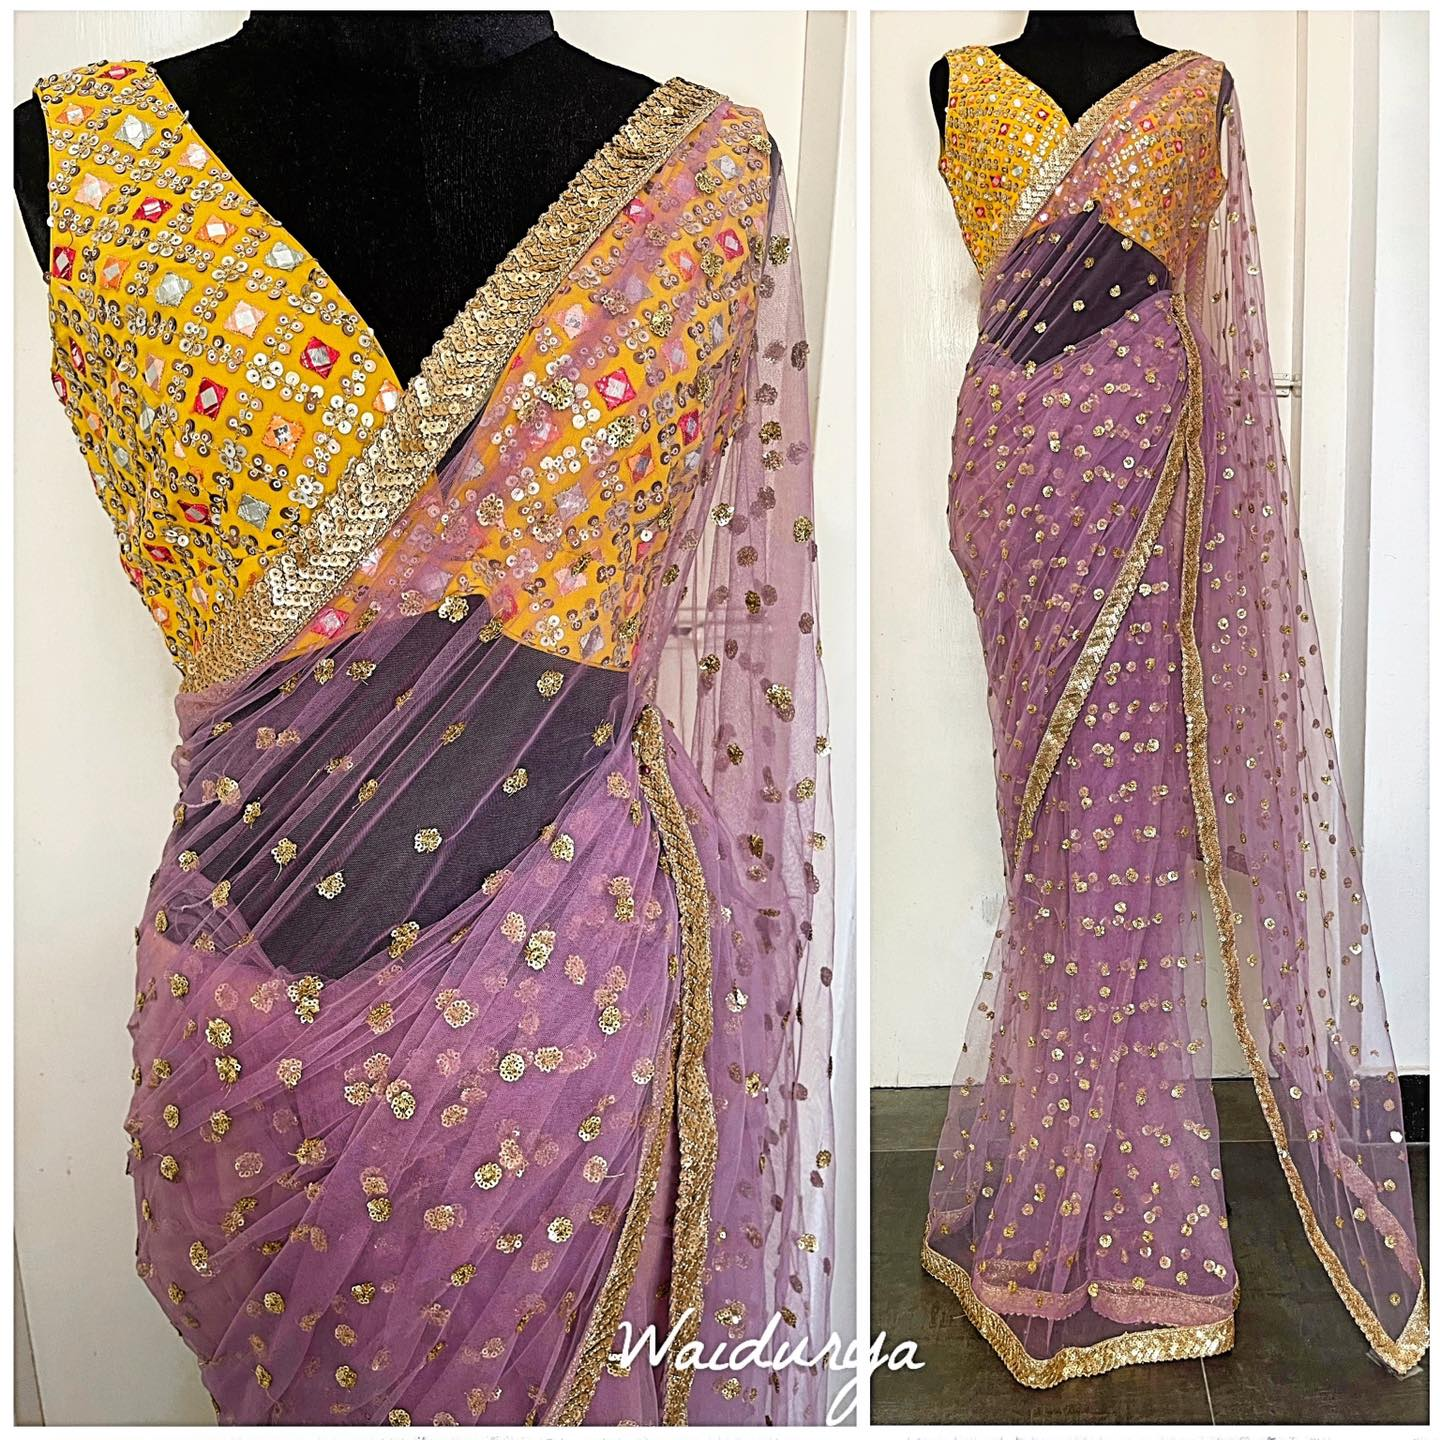 HARLOW - ONLY ONE AVAILABLE!  Love this look! The colors are everything and more! Deep lilac fully sequin cluster embroidered sari in a soft net that drapes beautifully.  The border is a hand made heavy sequin worked one. So rich and vibrant!!! The blouse!!! Loooove the bright yellow pink peach and red color blend with mirror work thread embroidery and sequin embroidery! Doesn't get better than this 2021-05-21